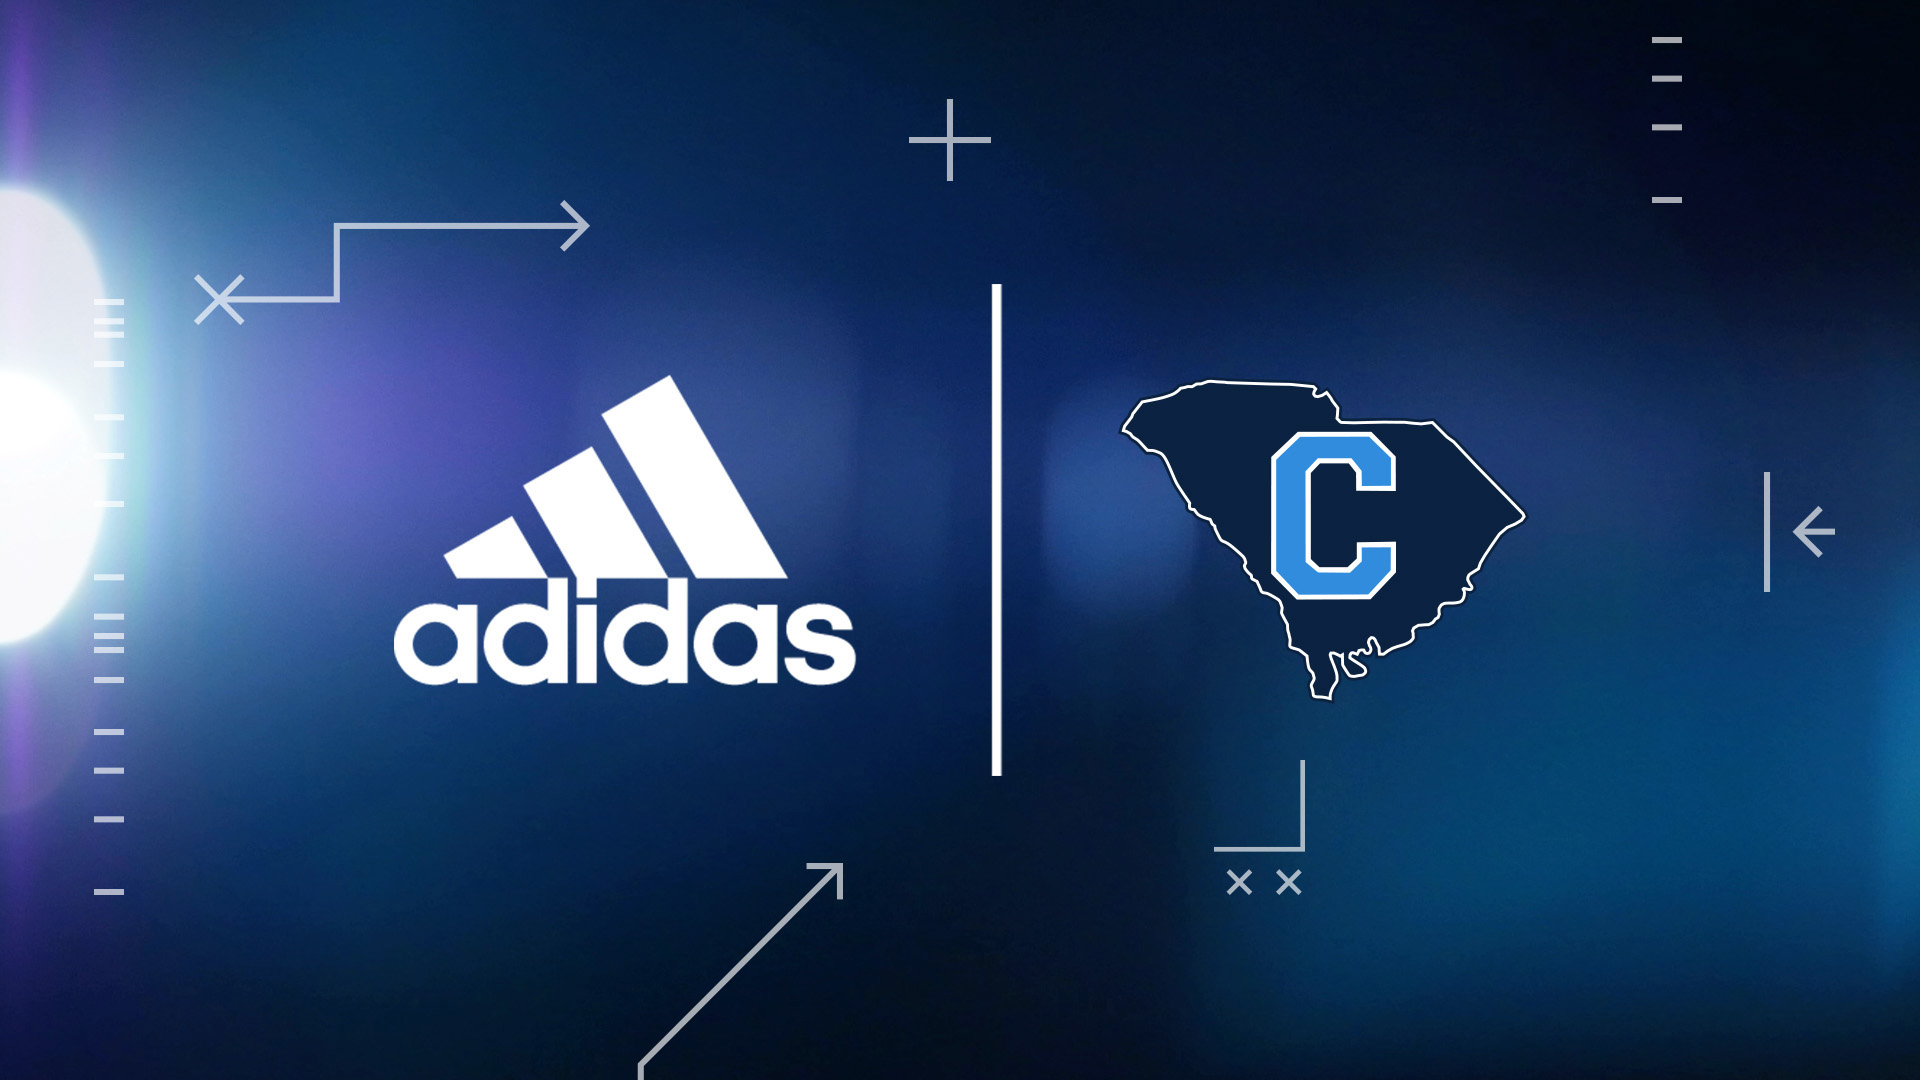 the citadel announces partnership with adidas